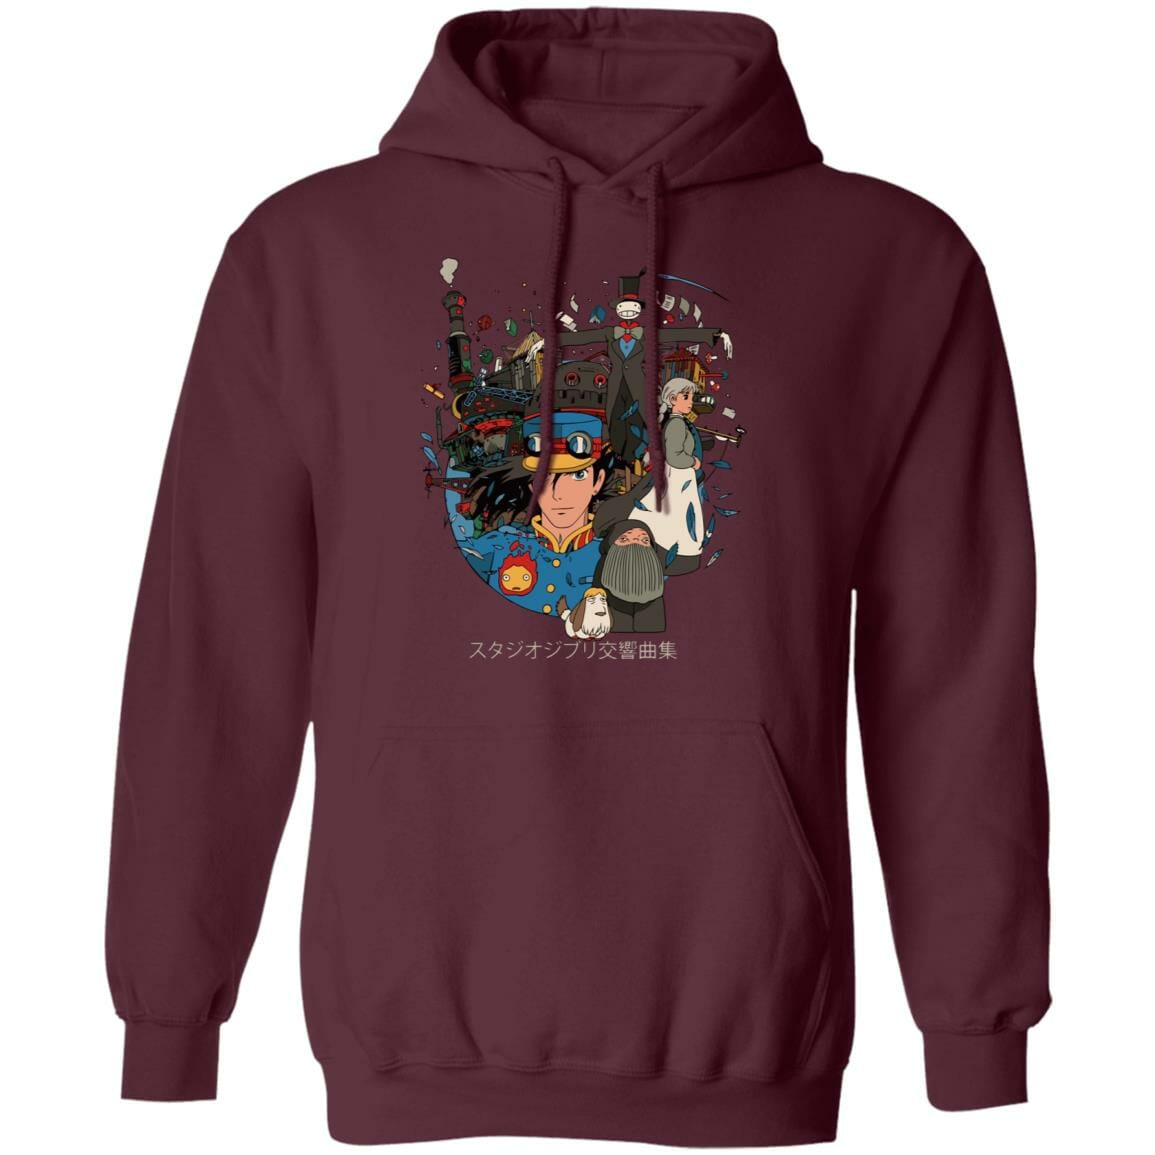 Howl's Moving Castle Characters Compilation Hoodie